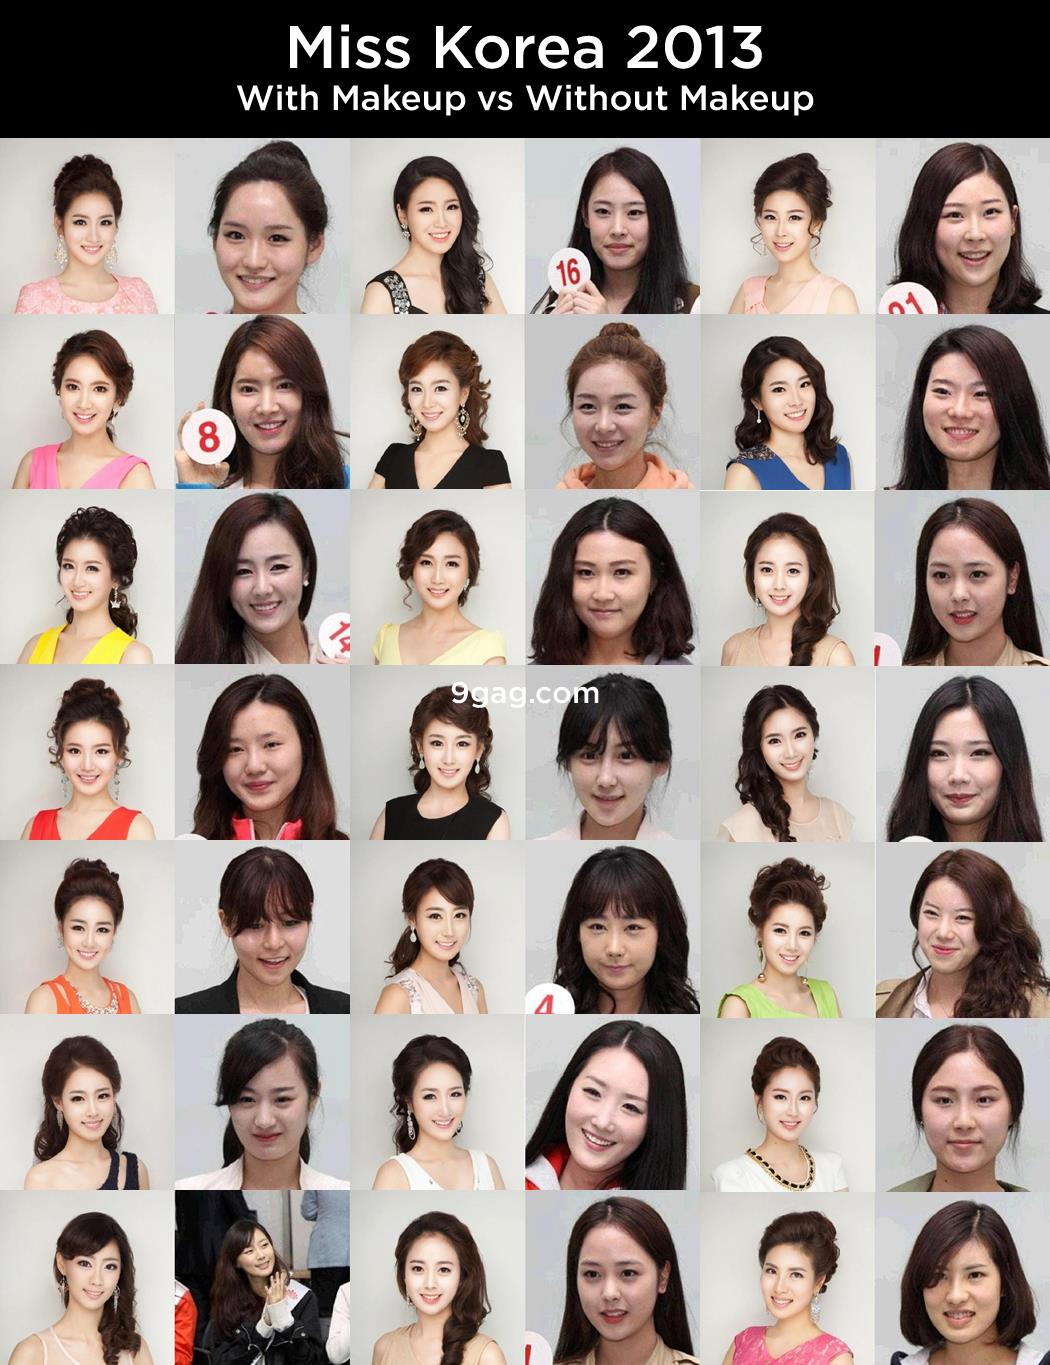 all the miss korea 2013 contestants have the same face due